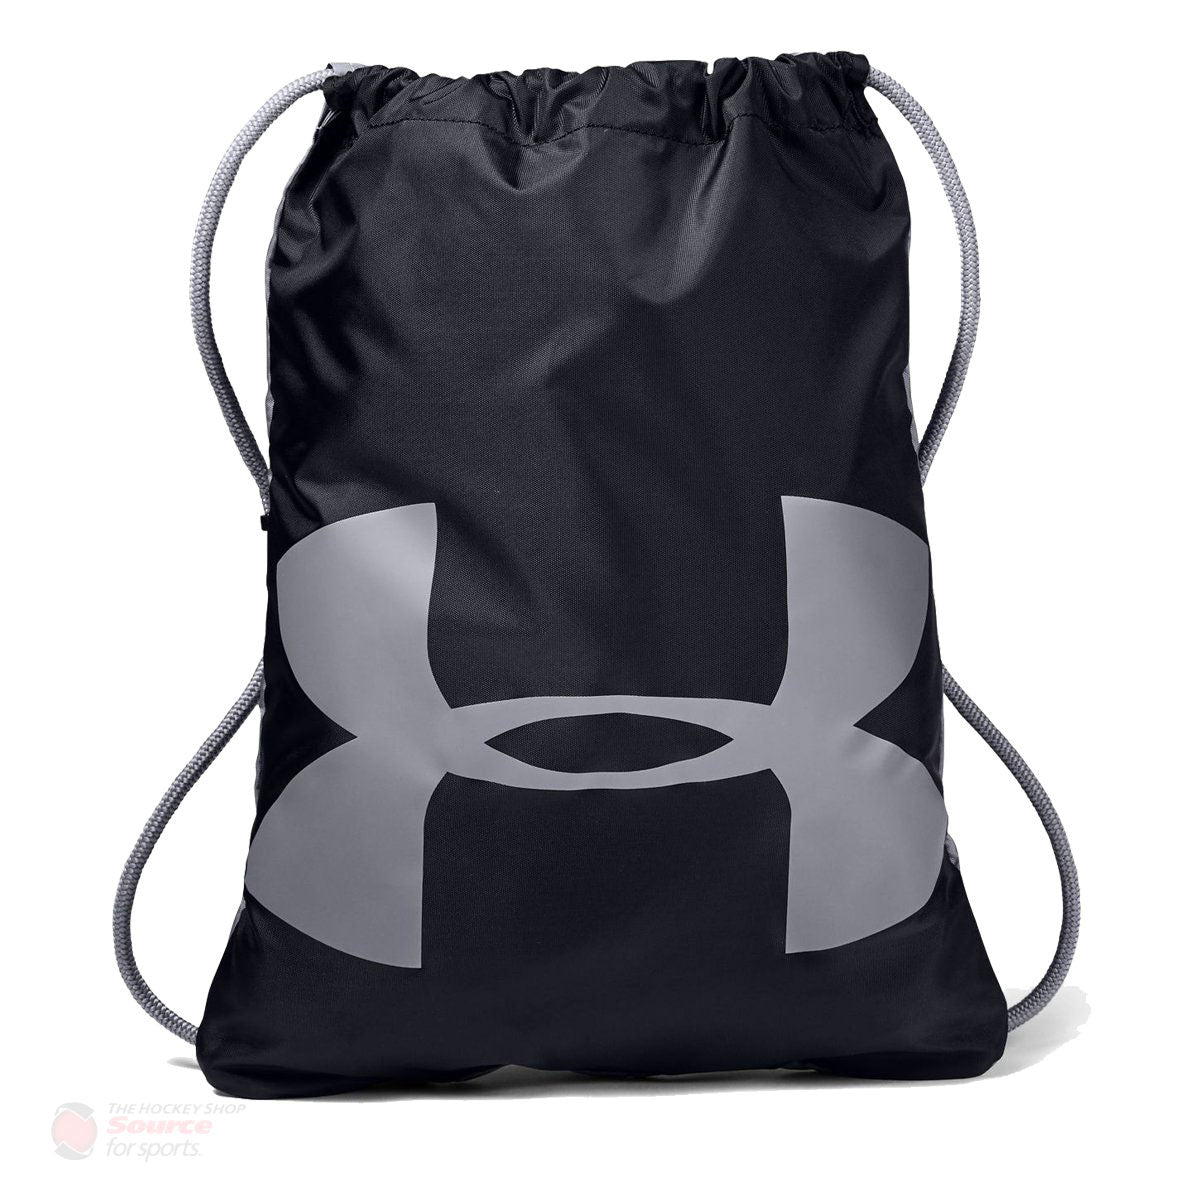 Under Armour Ozsee Sackpack Backpack